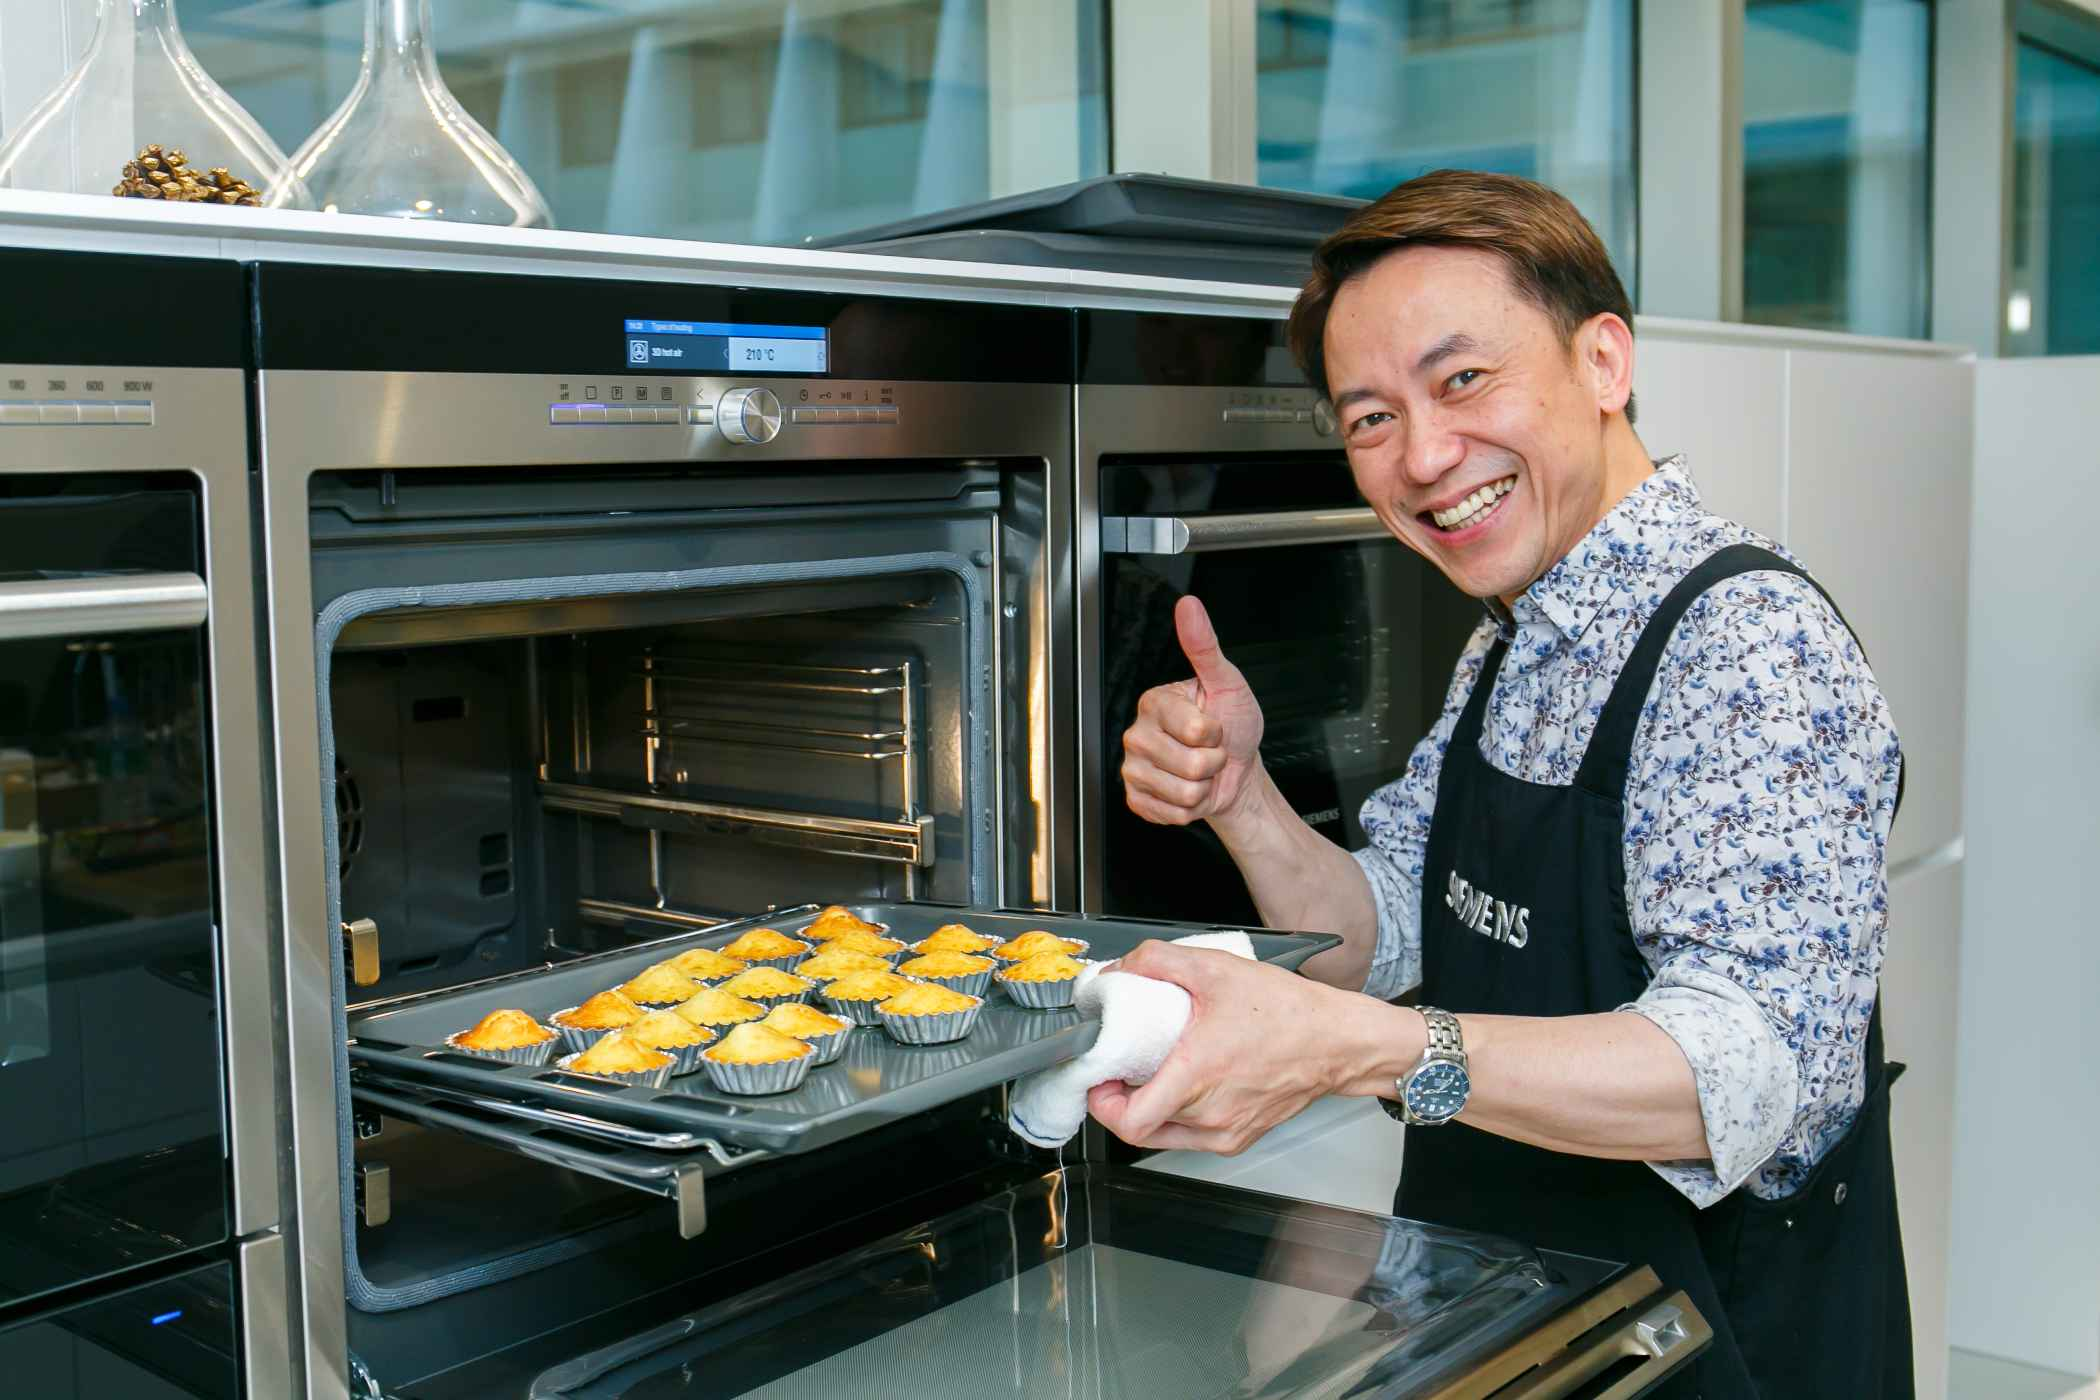 Siemens Ultimate Gourmet Journey Episode VI   Festive Delights Cooking  Demonstration By Ricky Cheung